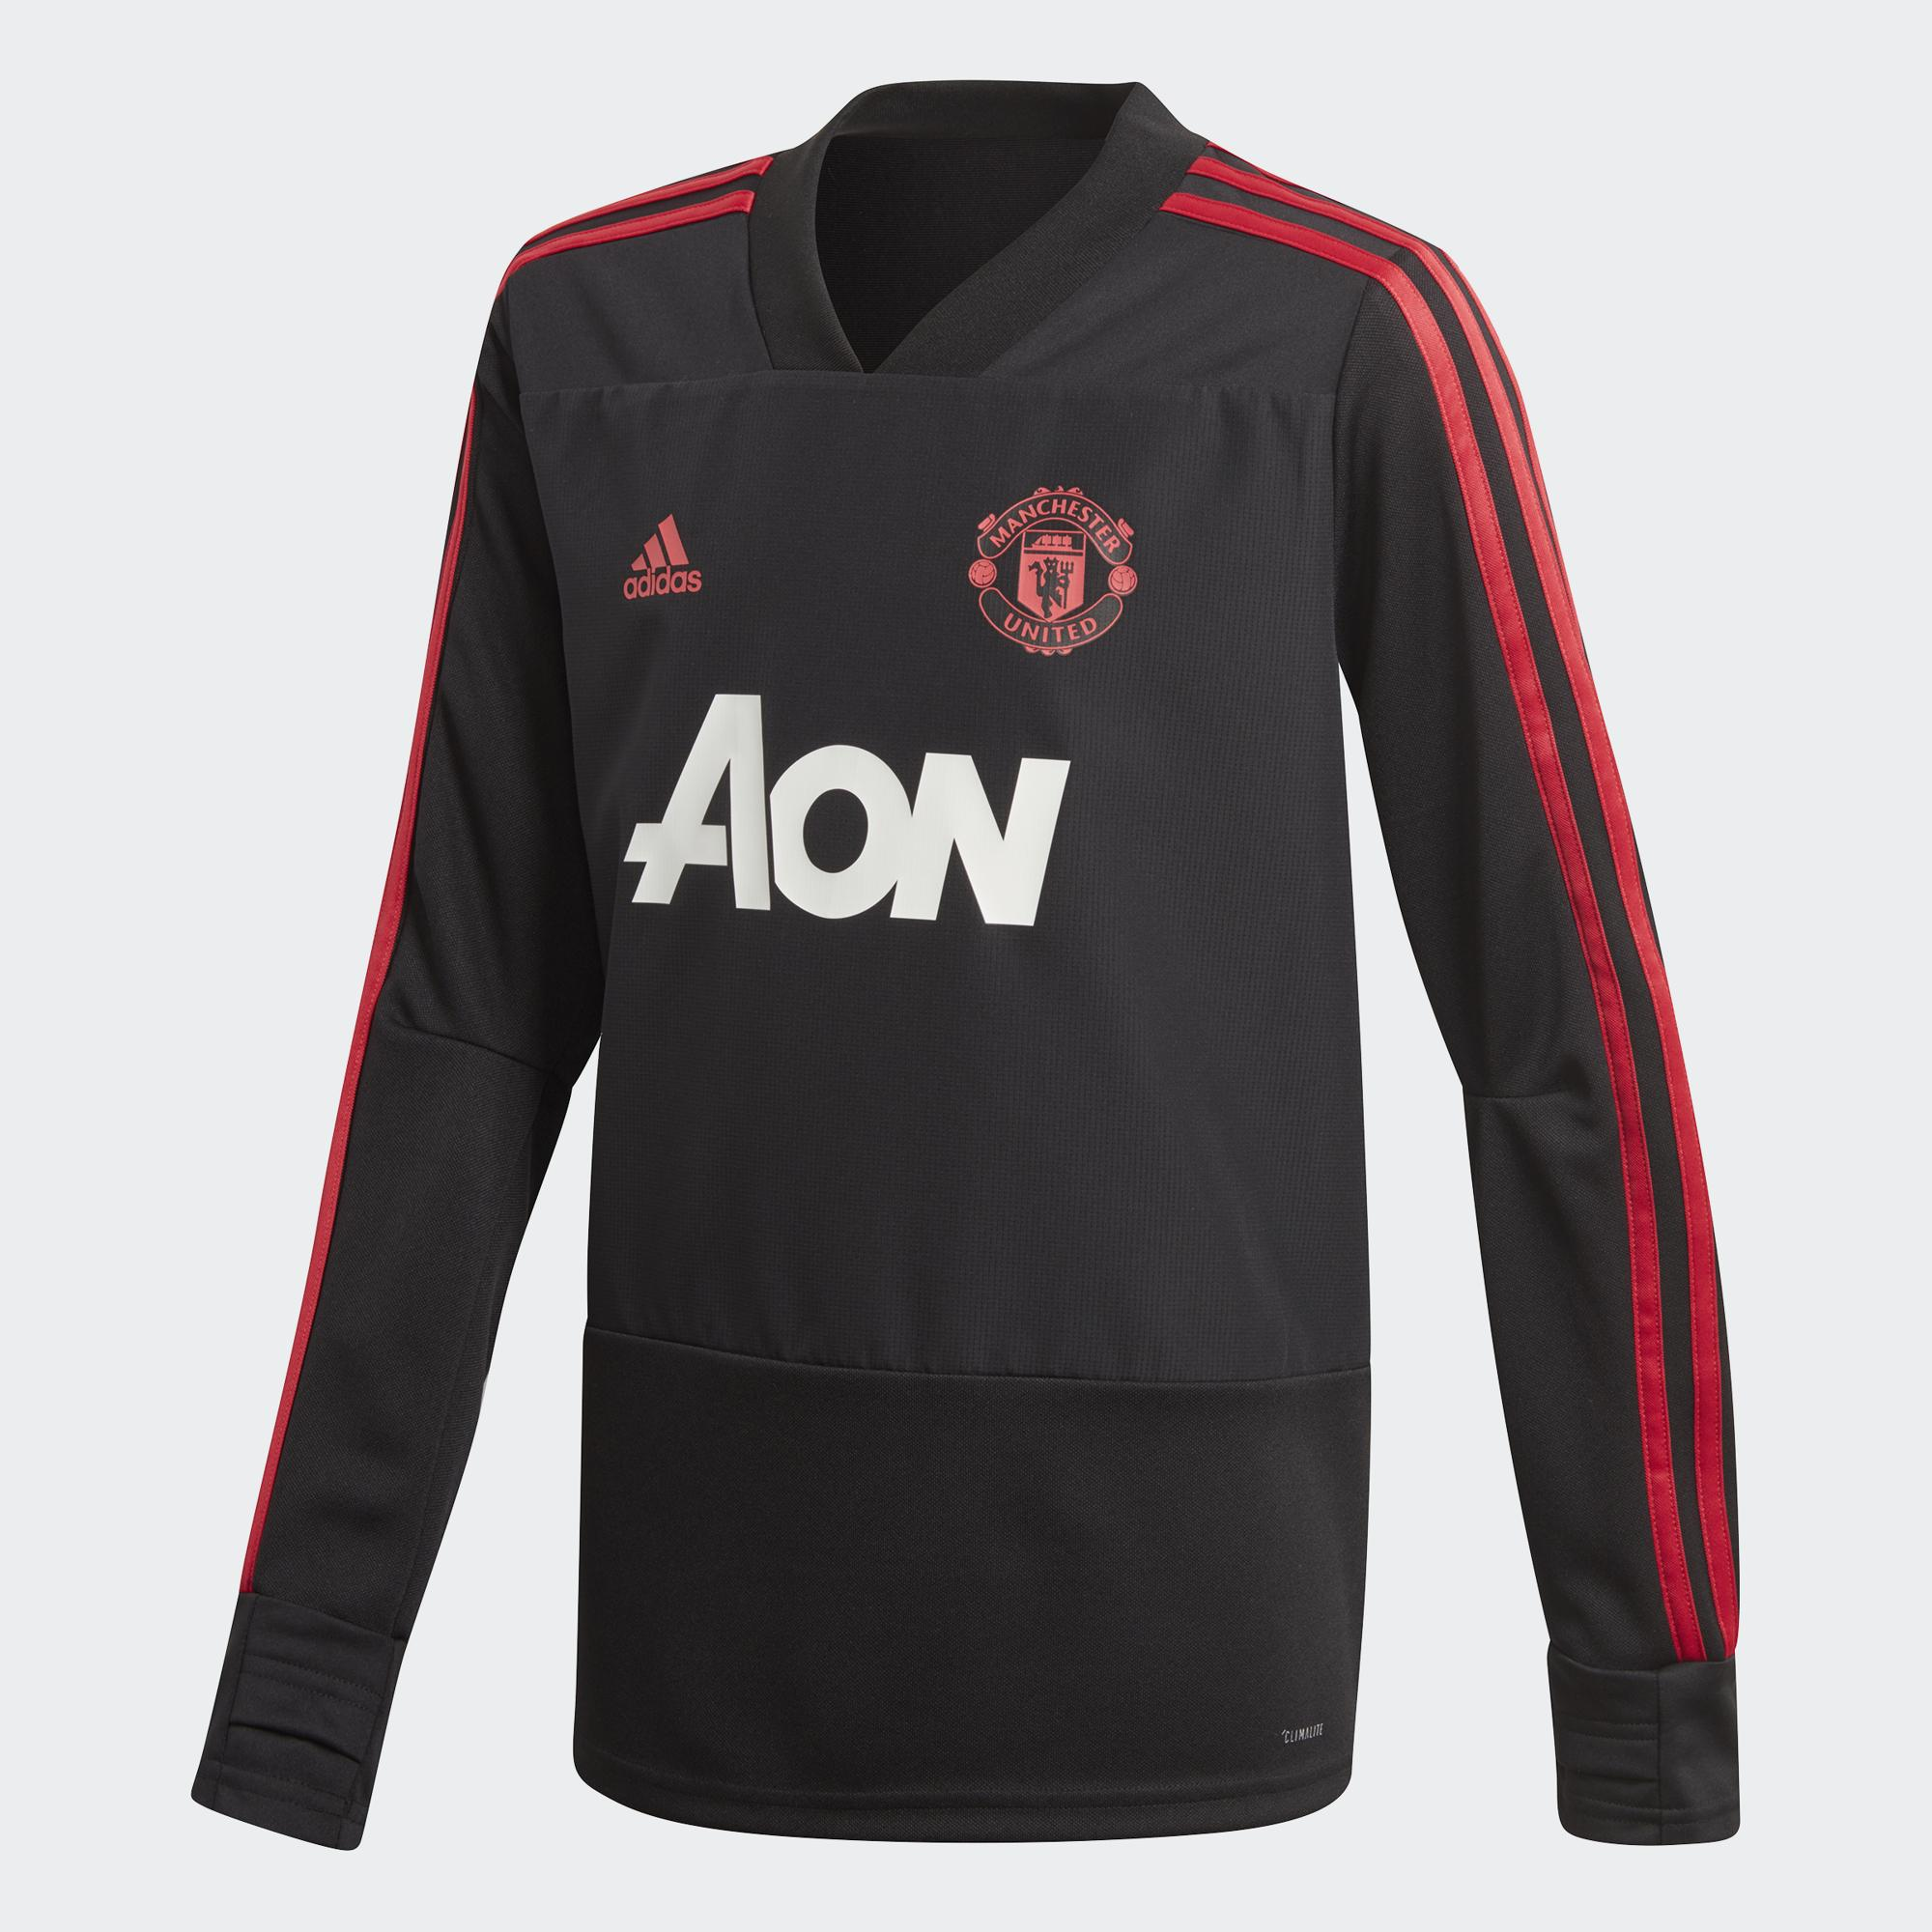 e99c5ac42 Adidas Sweatshirt Training Manchester United Junior Black   Blaze ...